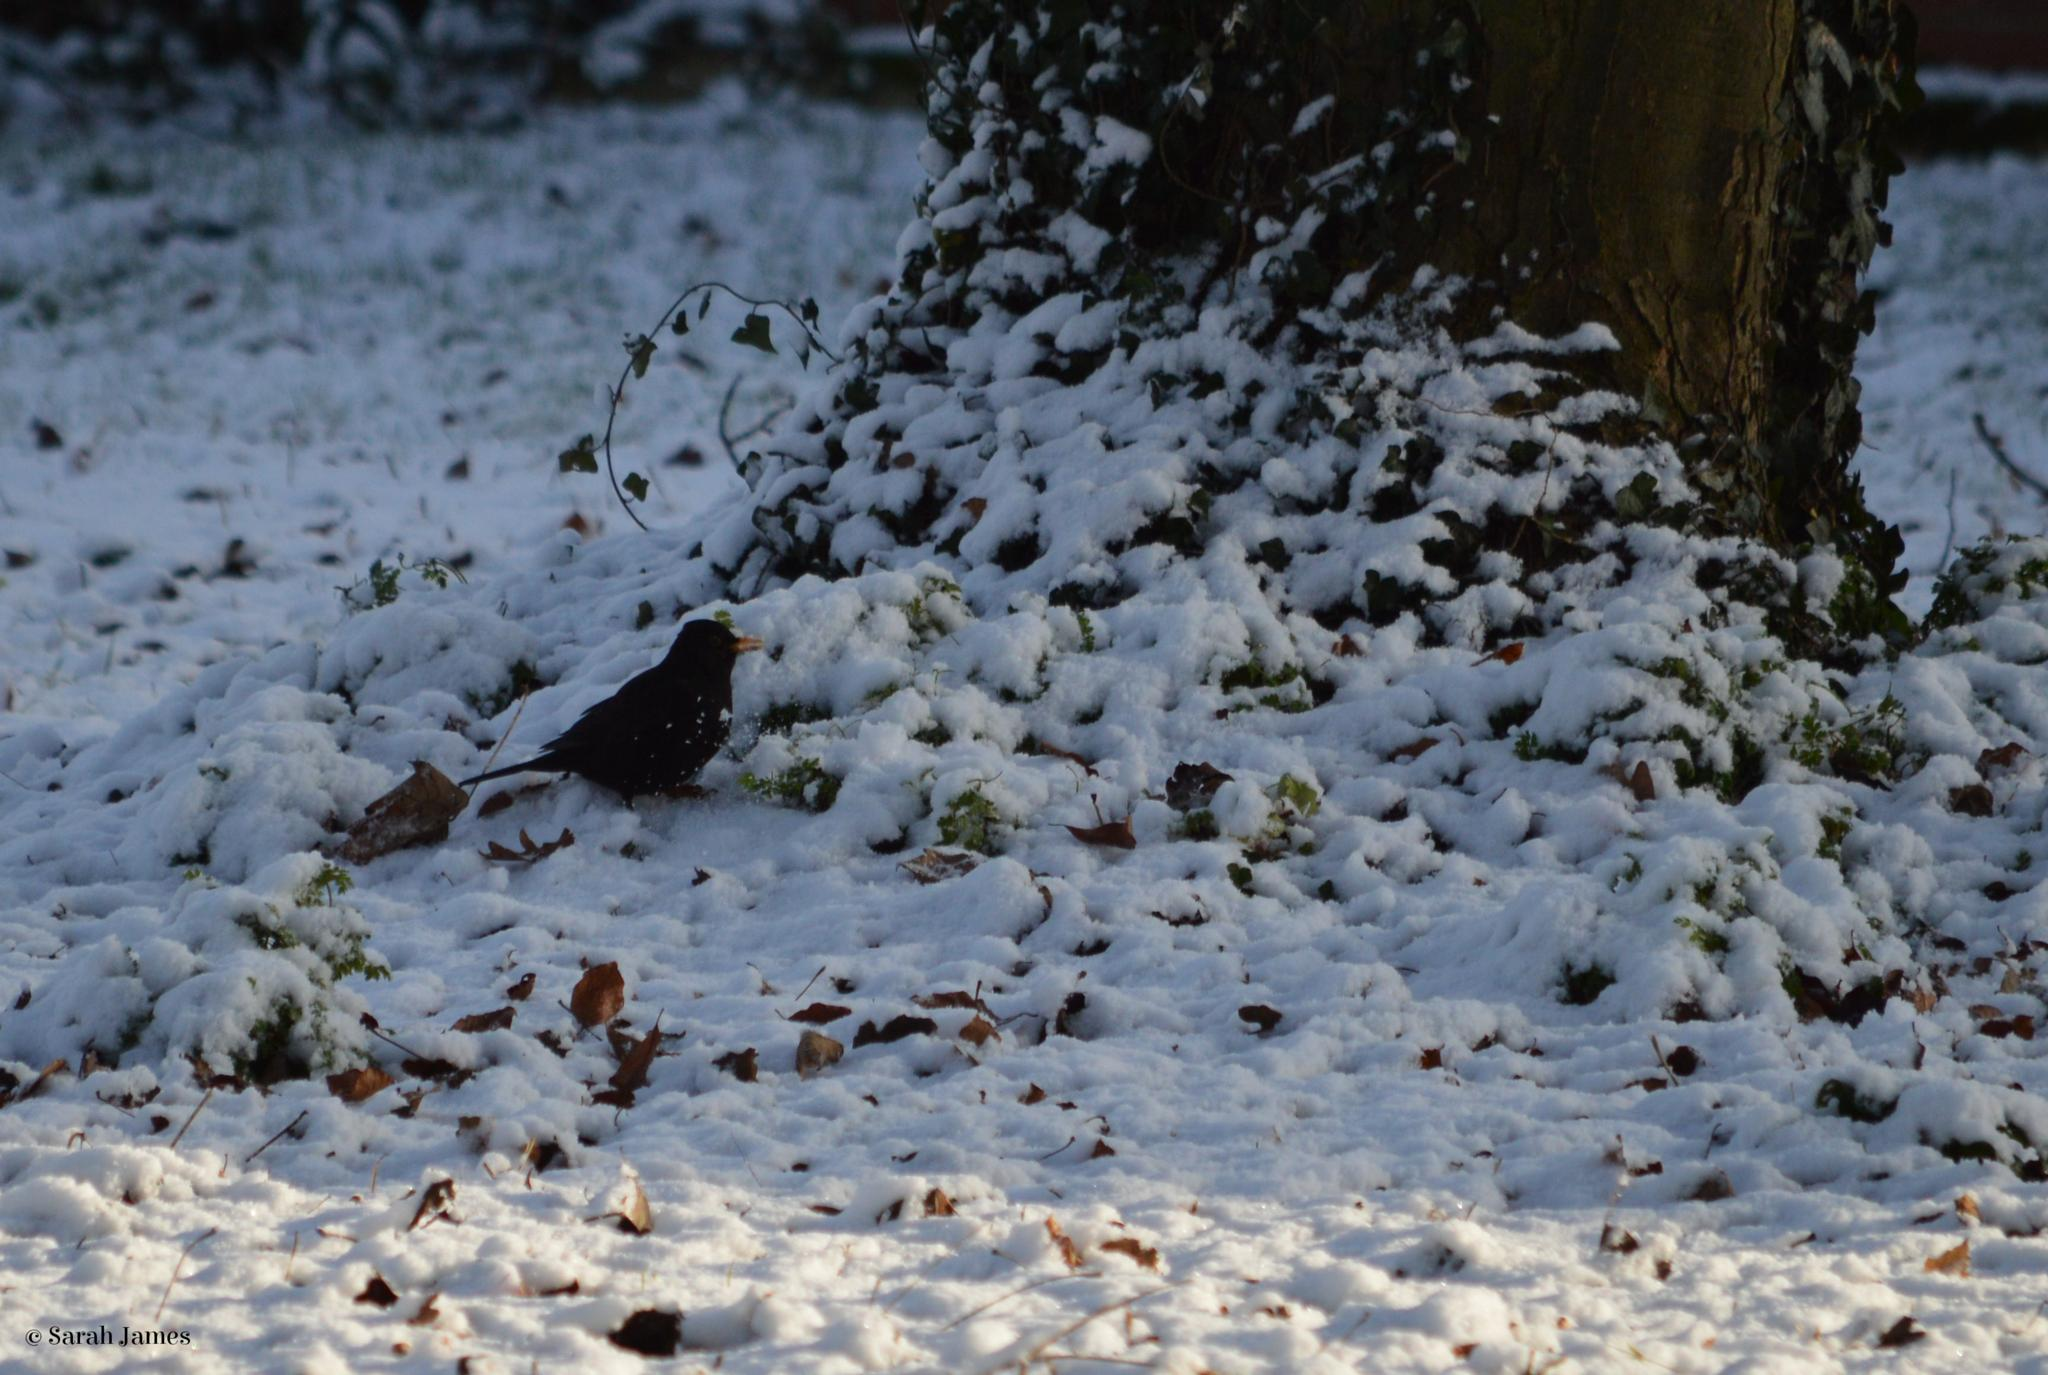 Blackbird in the snow by Sarah James